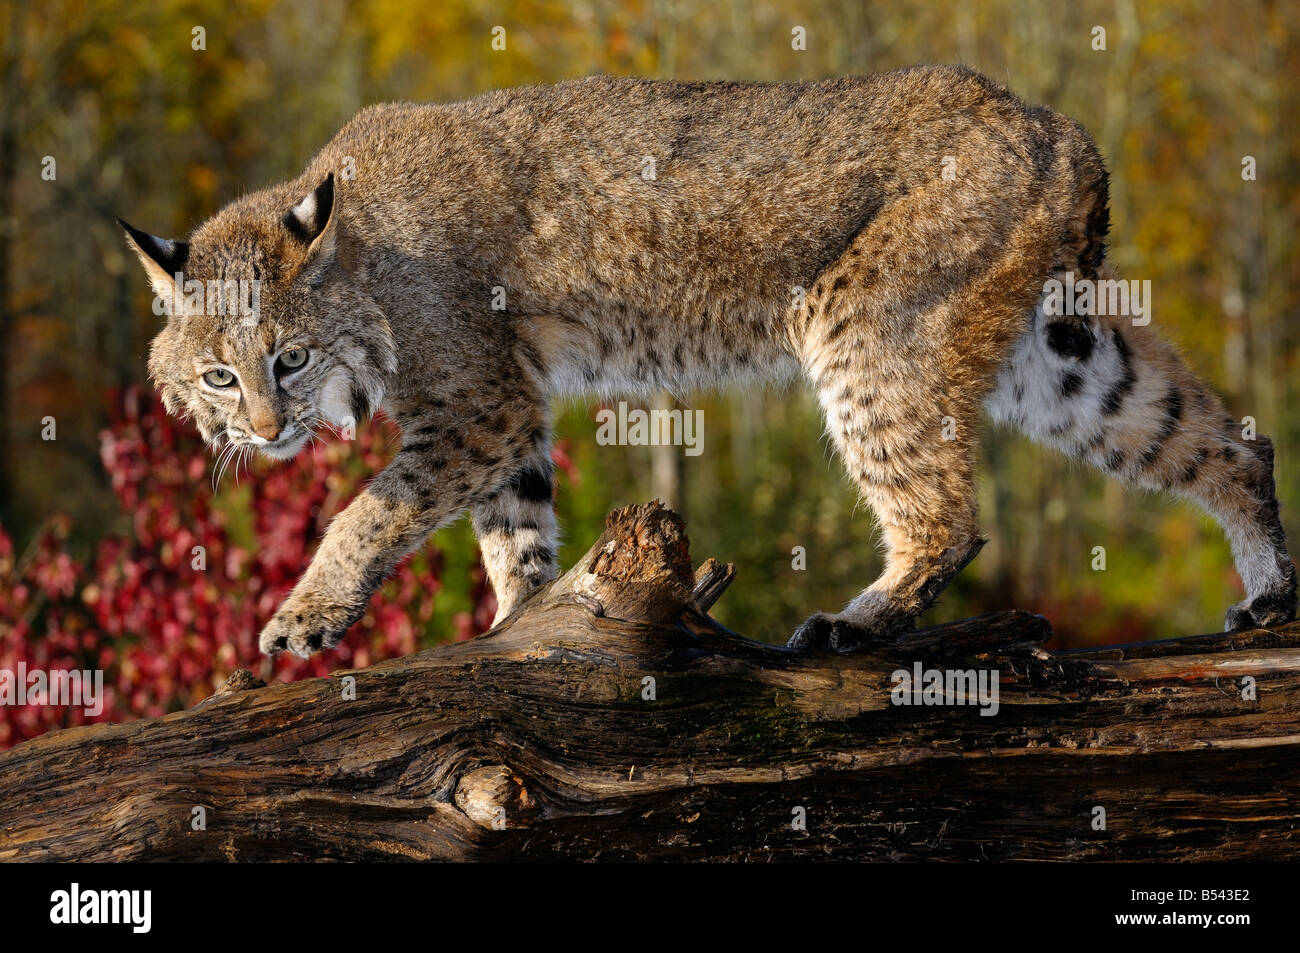 Bobcat walking along a fallen tree trunk with red maple leaves in Autumn - Stock Image